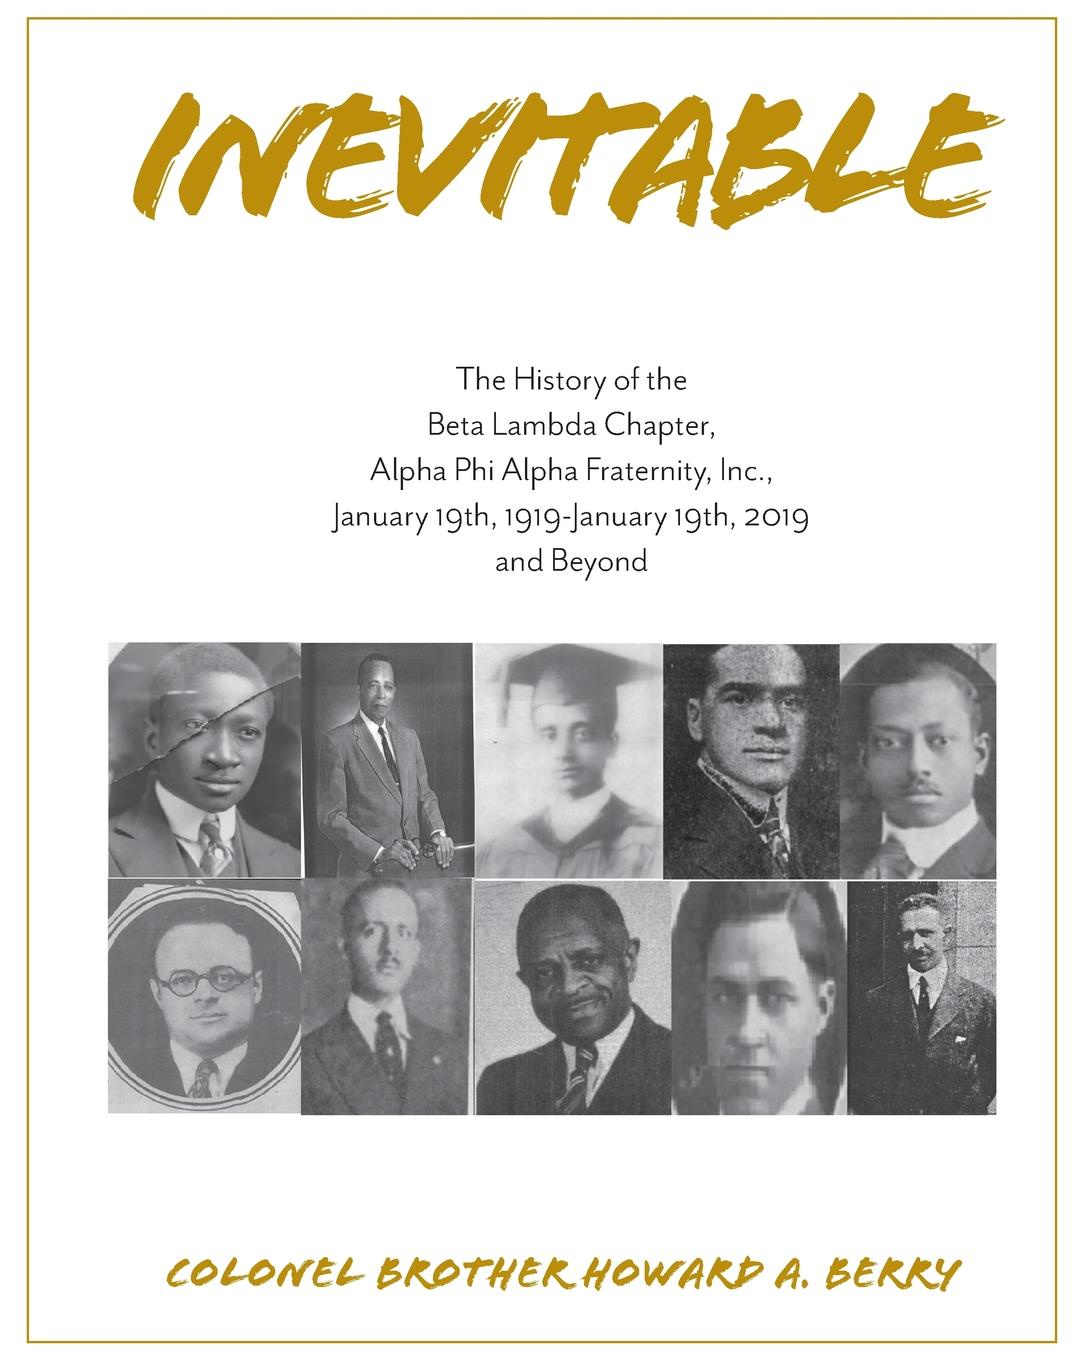 Howard A. Berry Inevitable. The History of the Beta Lambda Chapter, Alpha Phi Alpha Fraternity, Inc., January 19, 1919 - January 19, 2019 and Beyond phi beta kappa connecticut alpha catalogue of members